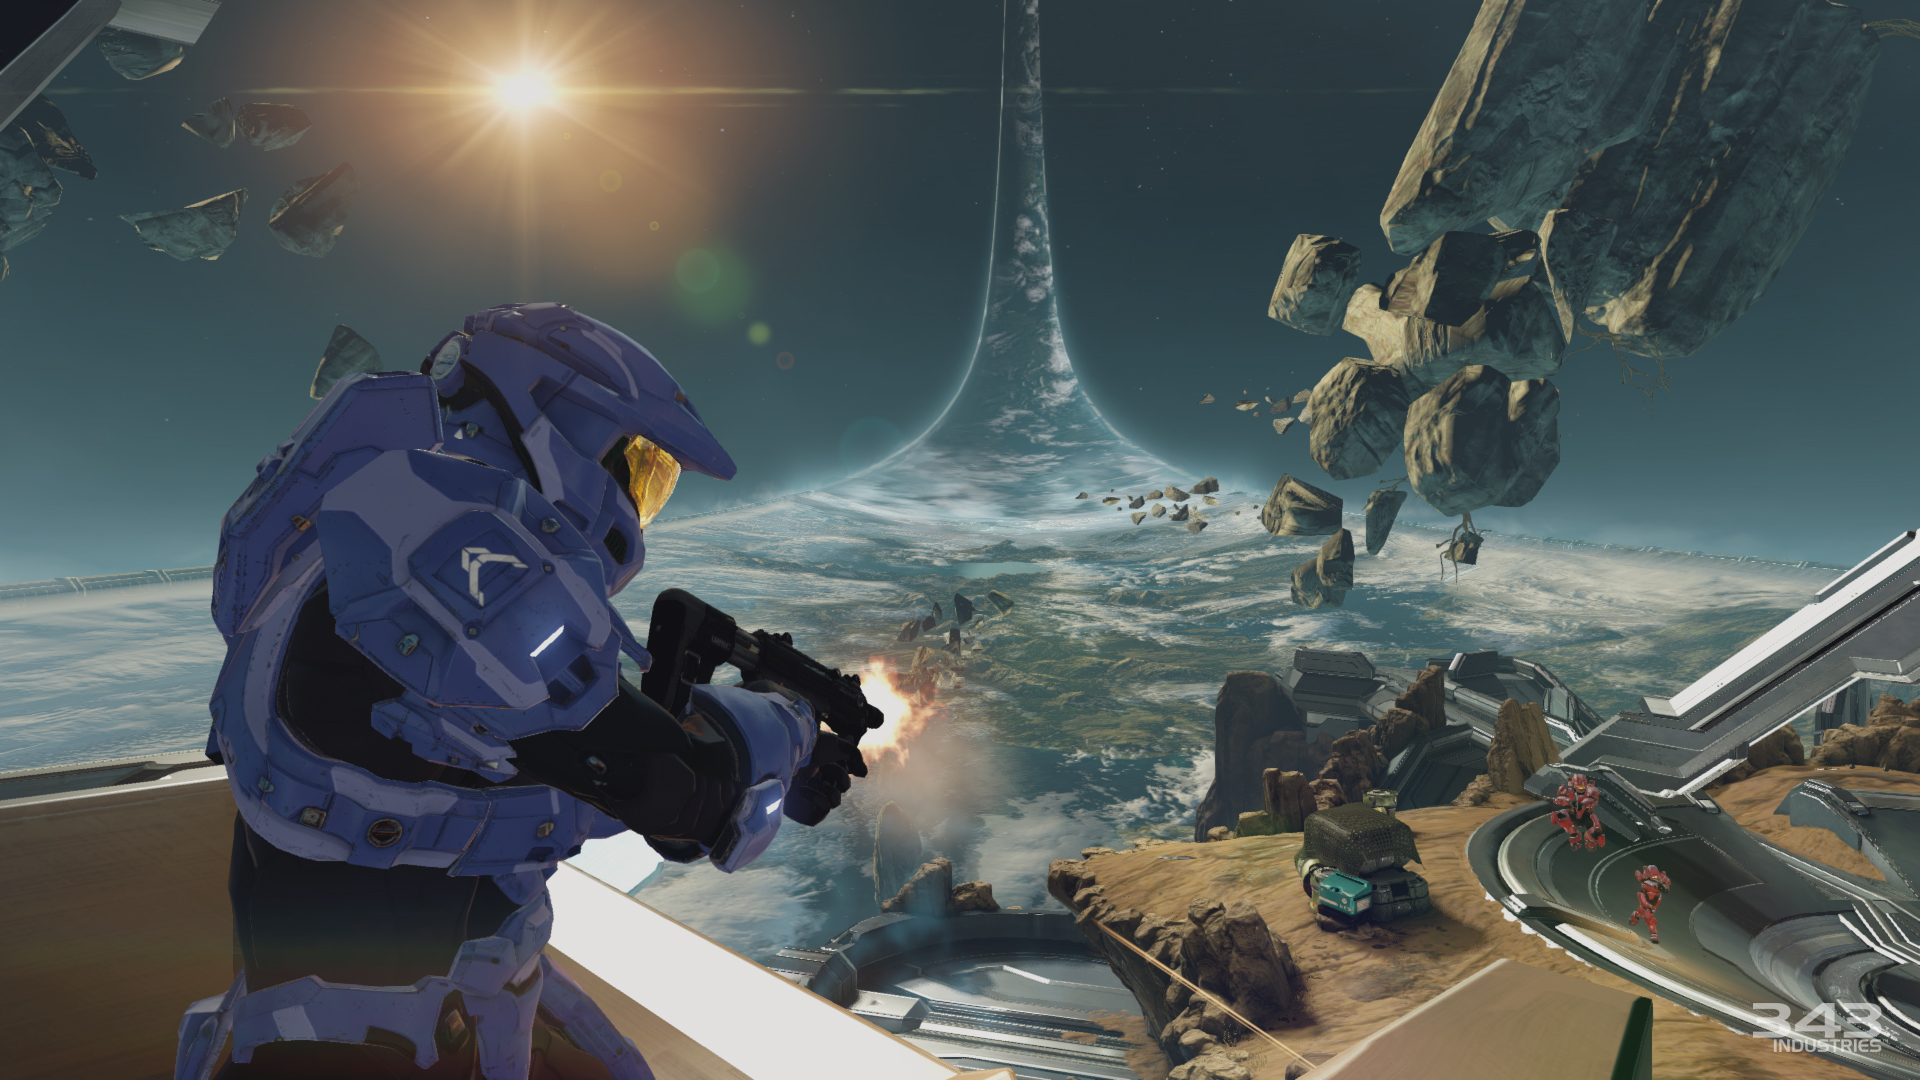 「halo masterchief collection screen shot」の画像検索結果